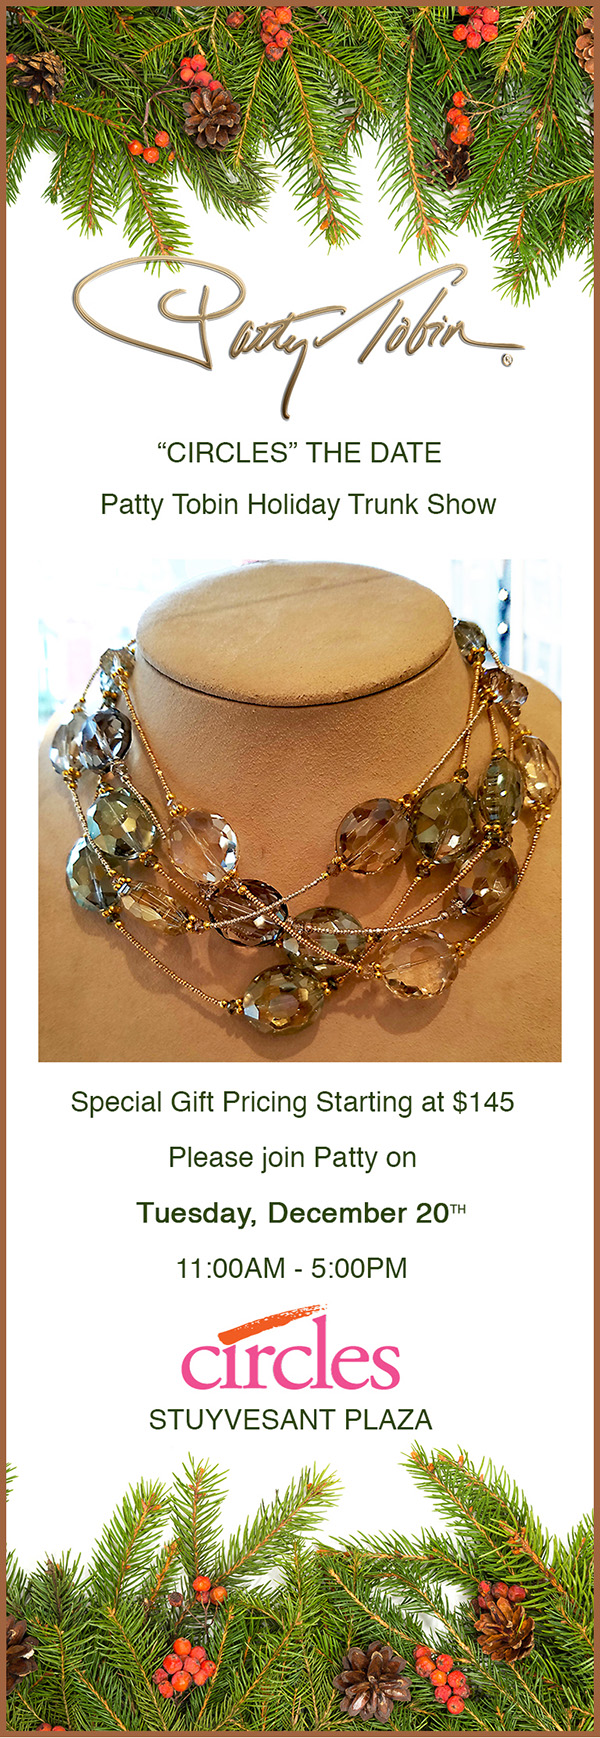 Patty Tobin Holiday Gifts Trunk Show at Circles on 12/20/16